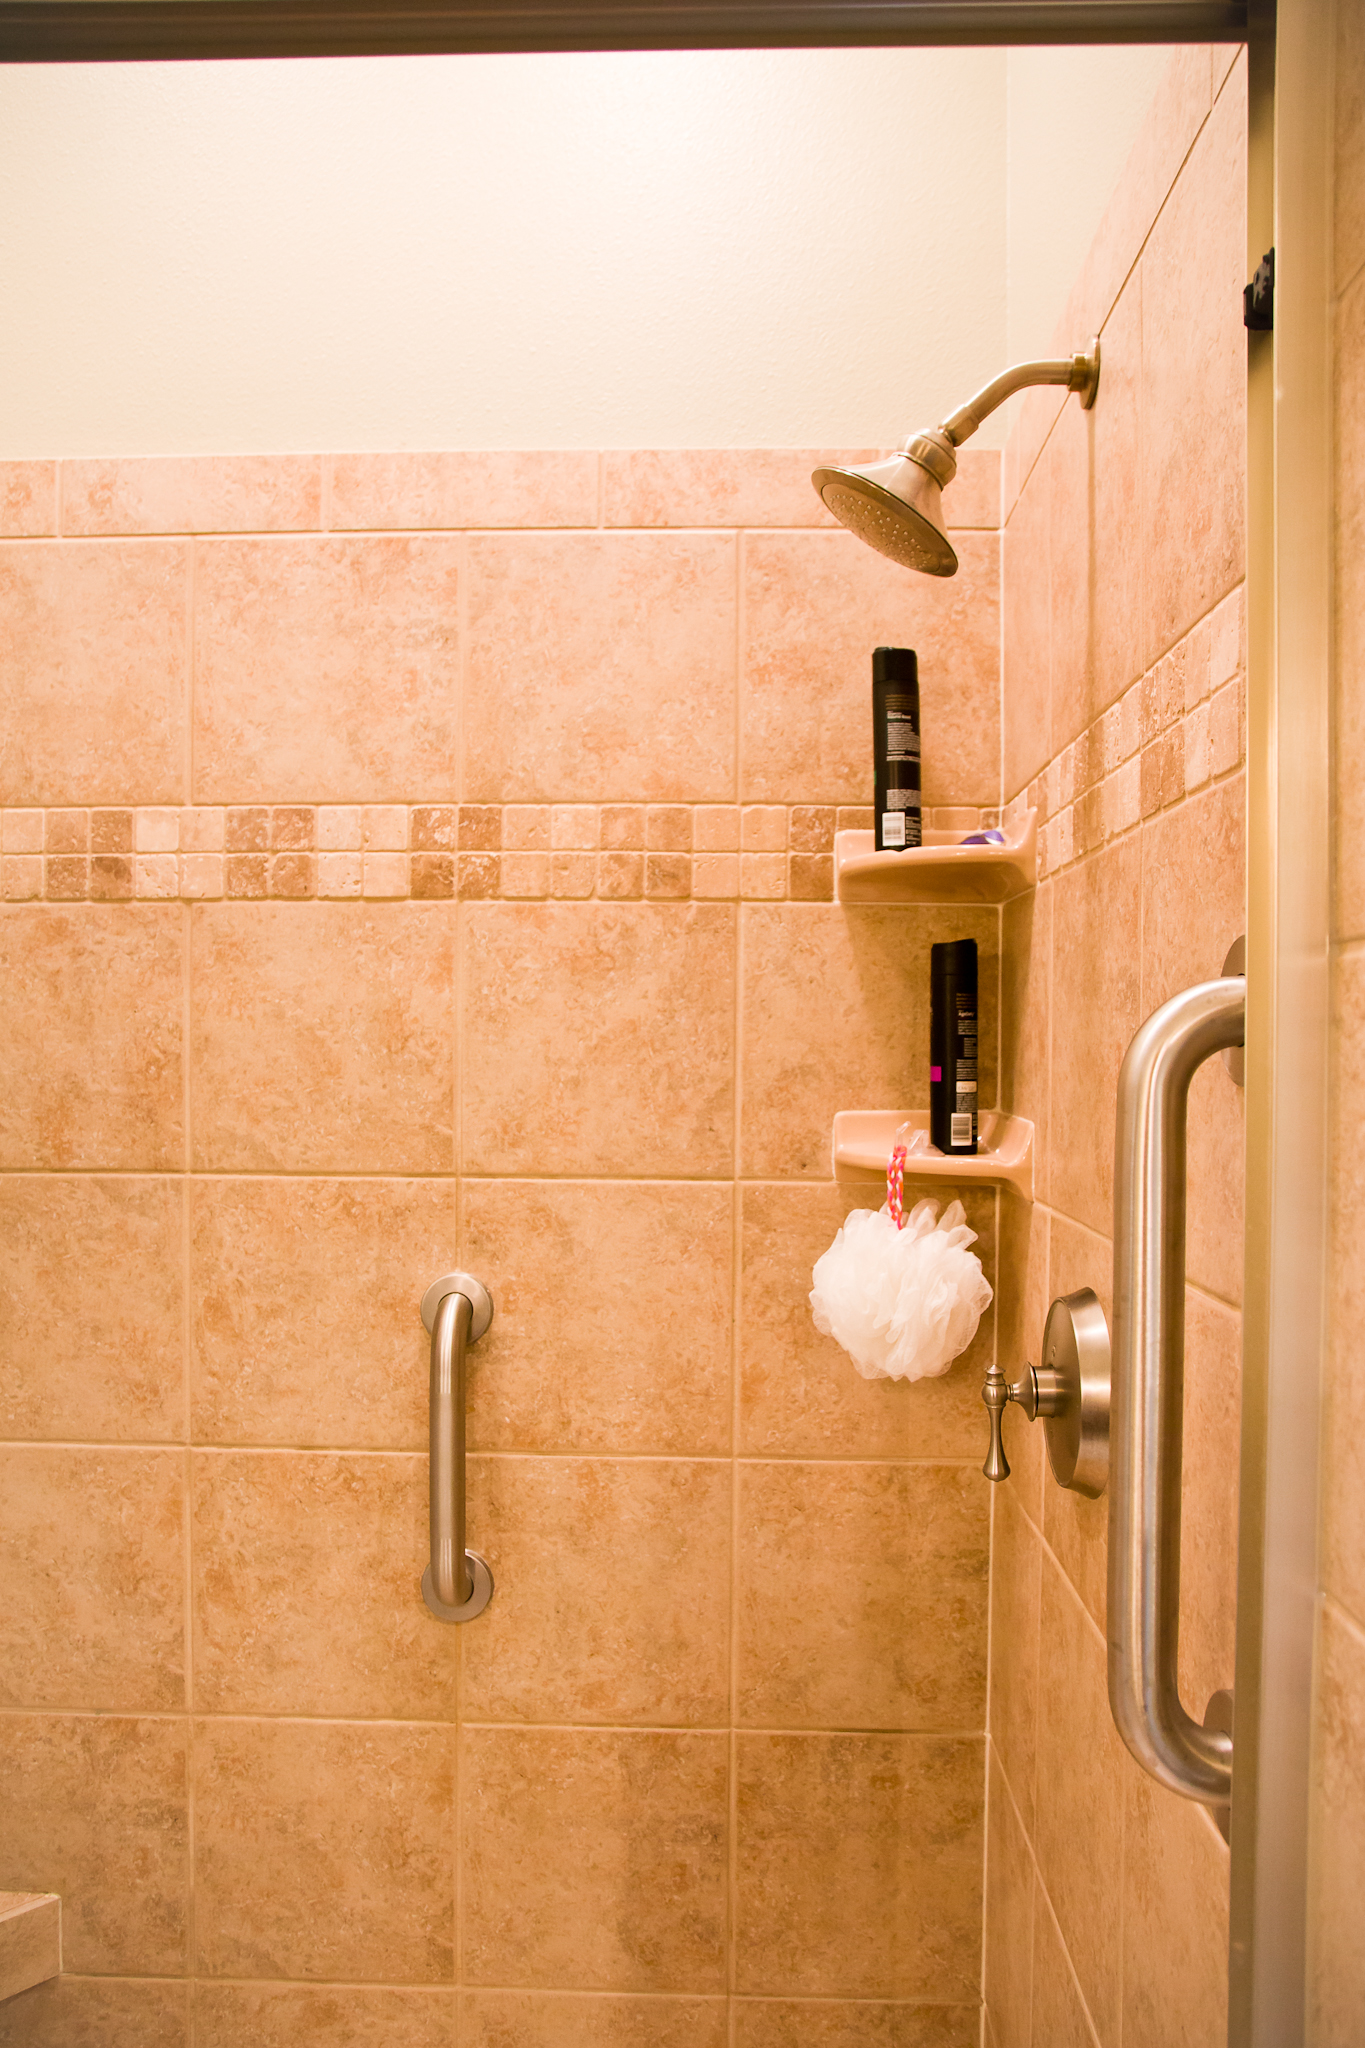 Shower Grab Bars Installed by Smart Accessible Living